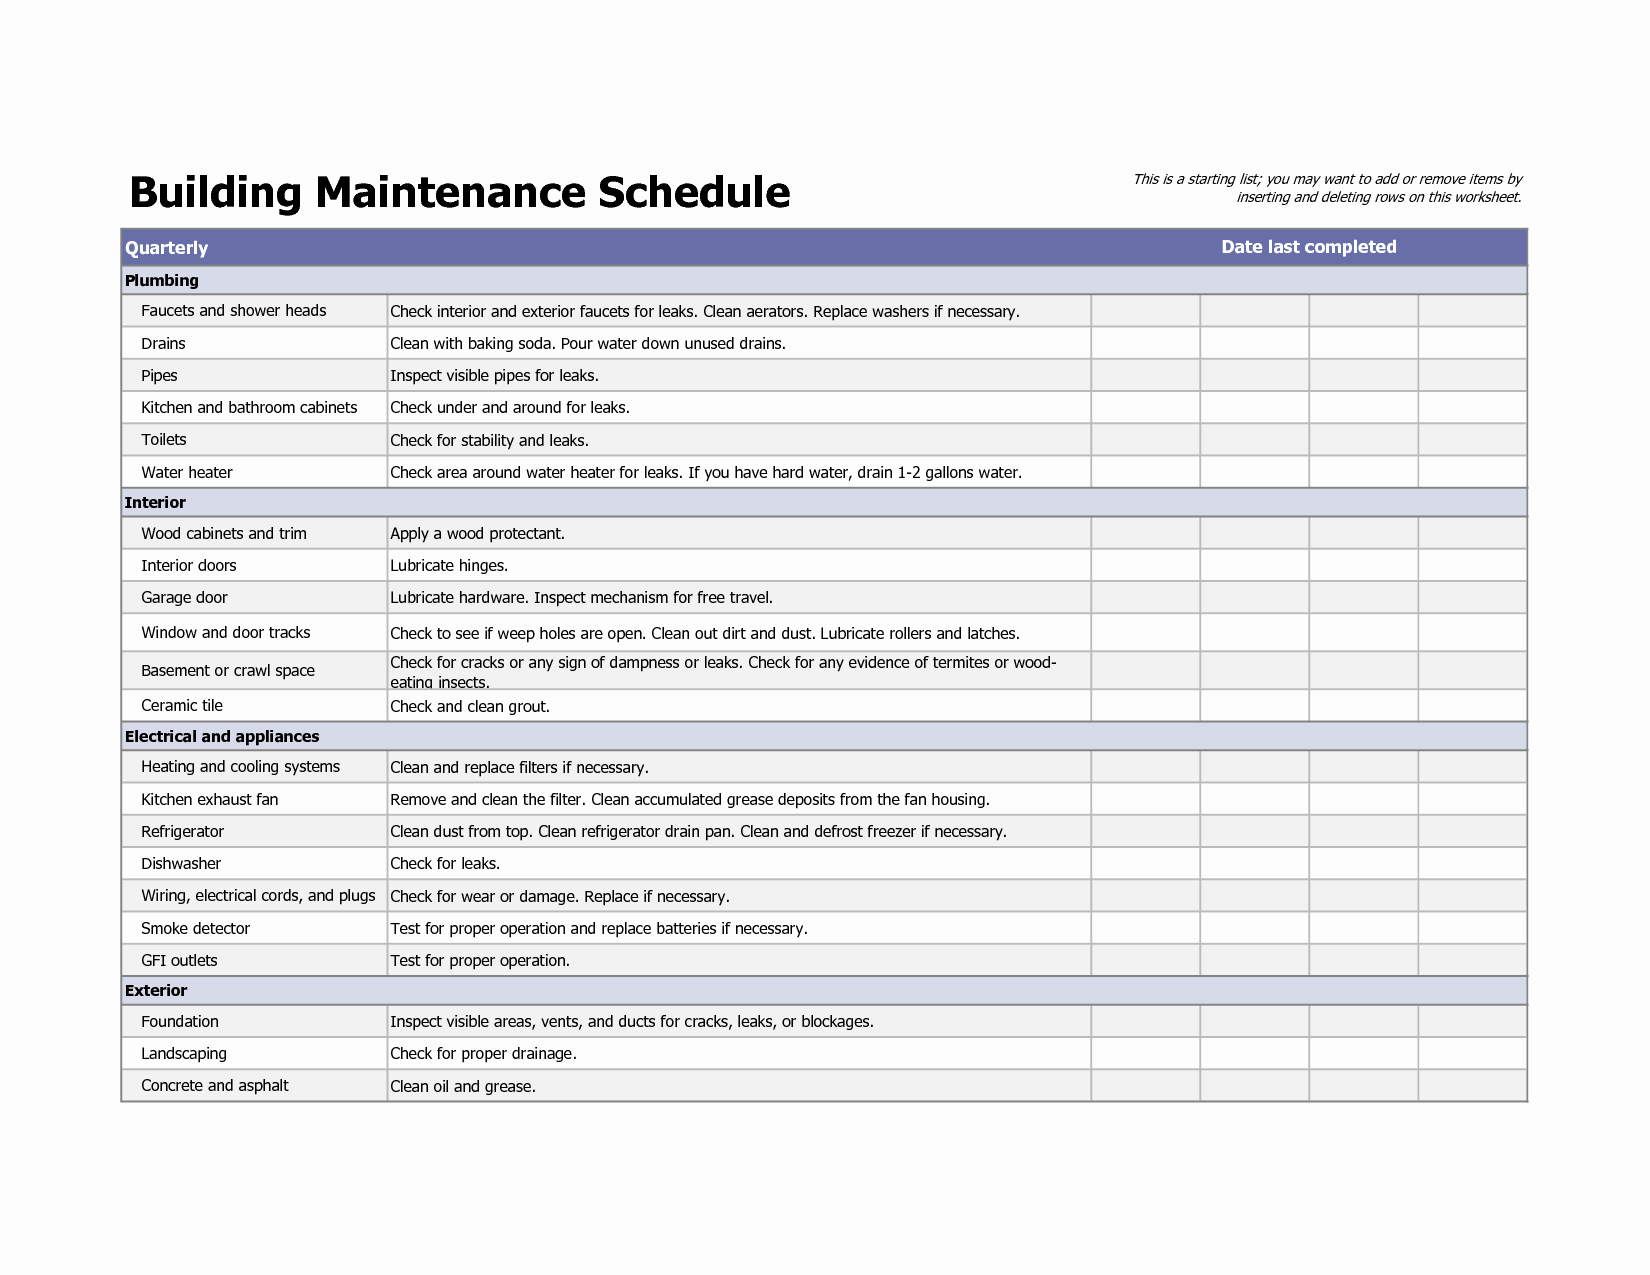 Preventive Maintenance Excel Template Fresh Building Maintenance Schedule Excel Template